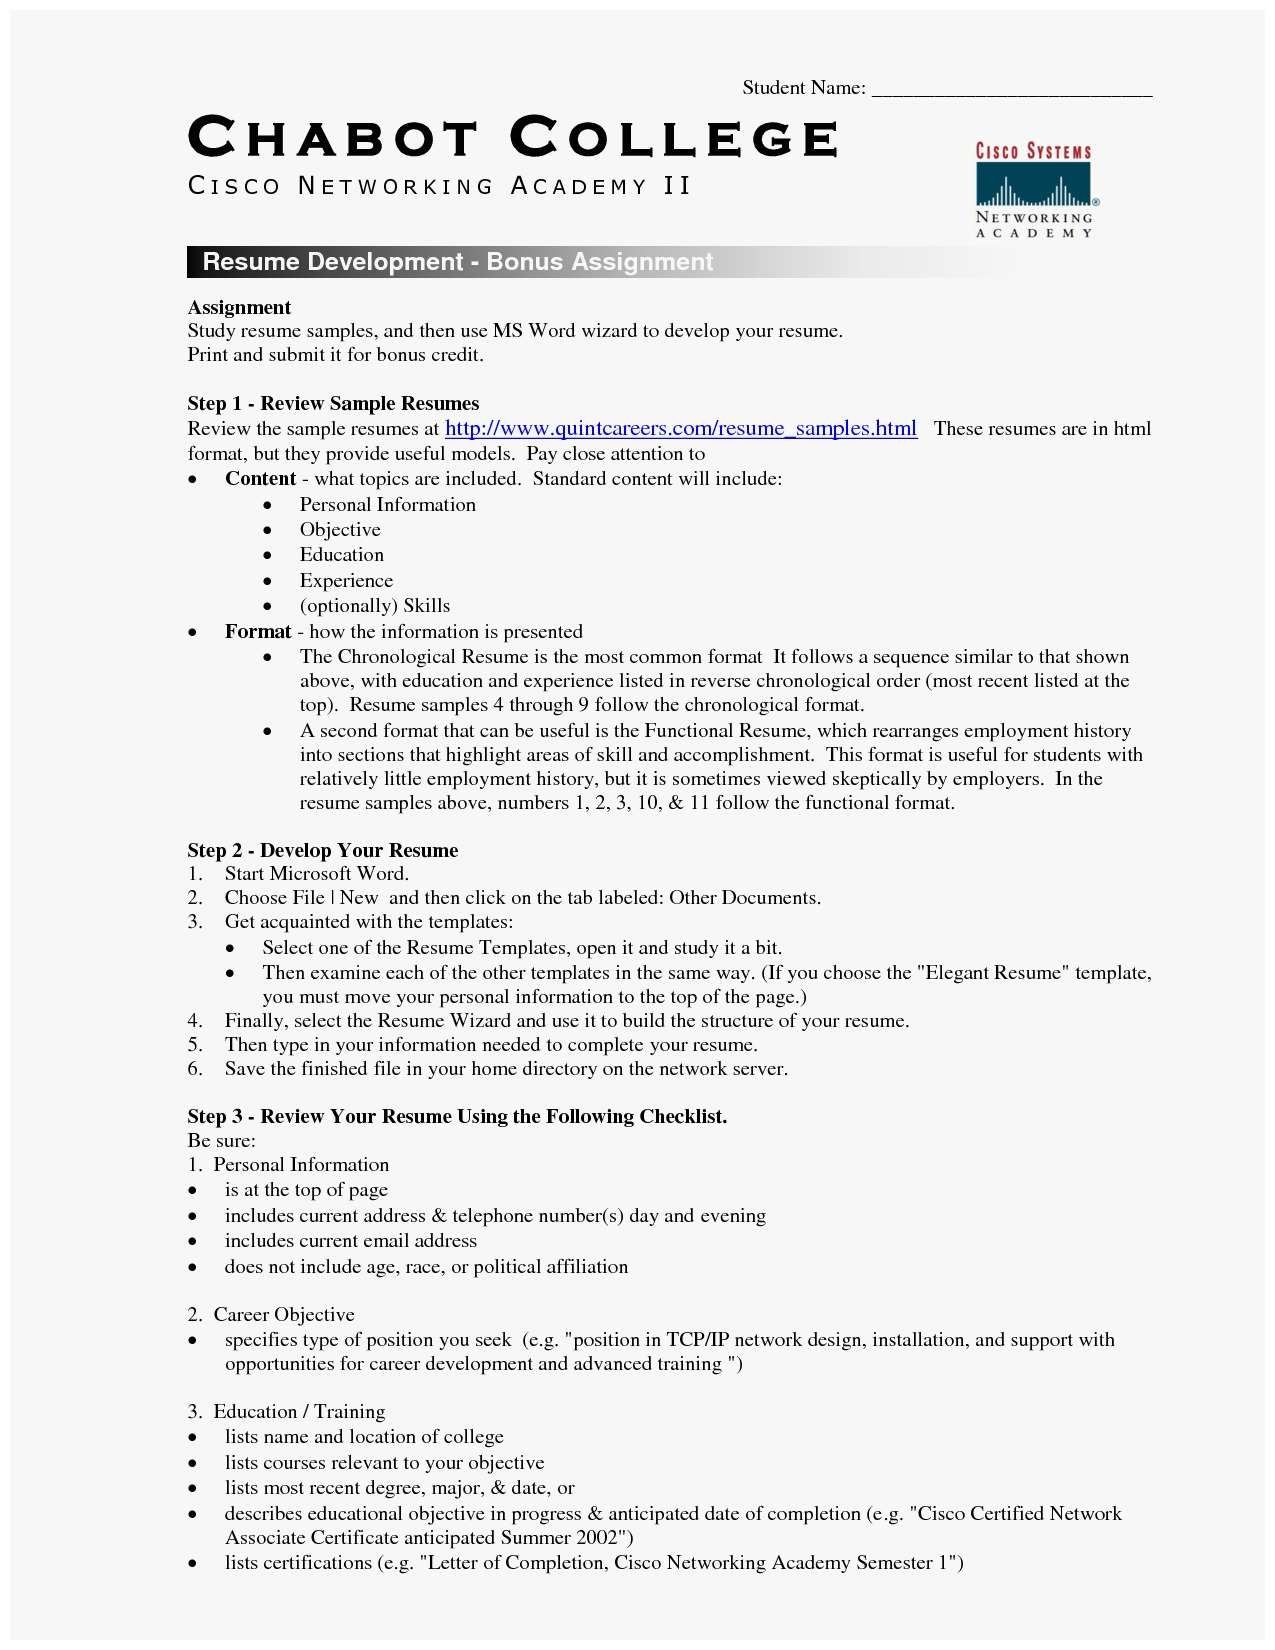 computer science resume reddit luxury help administrative assistant responsibilities software engineer with no experience it career objective examples